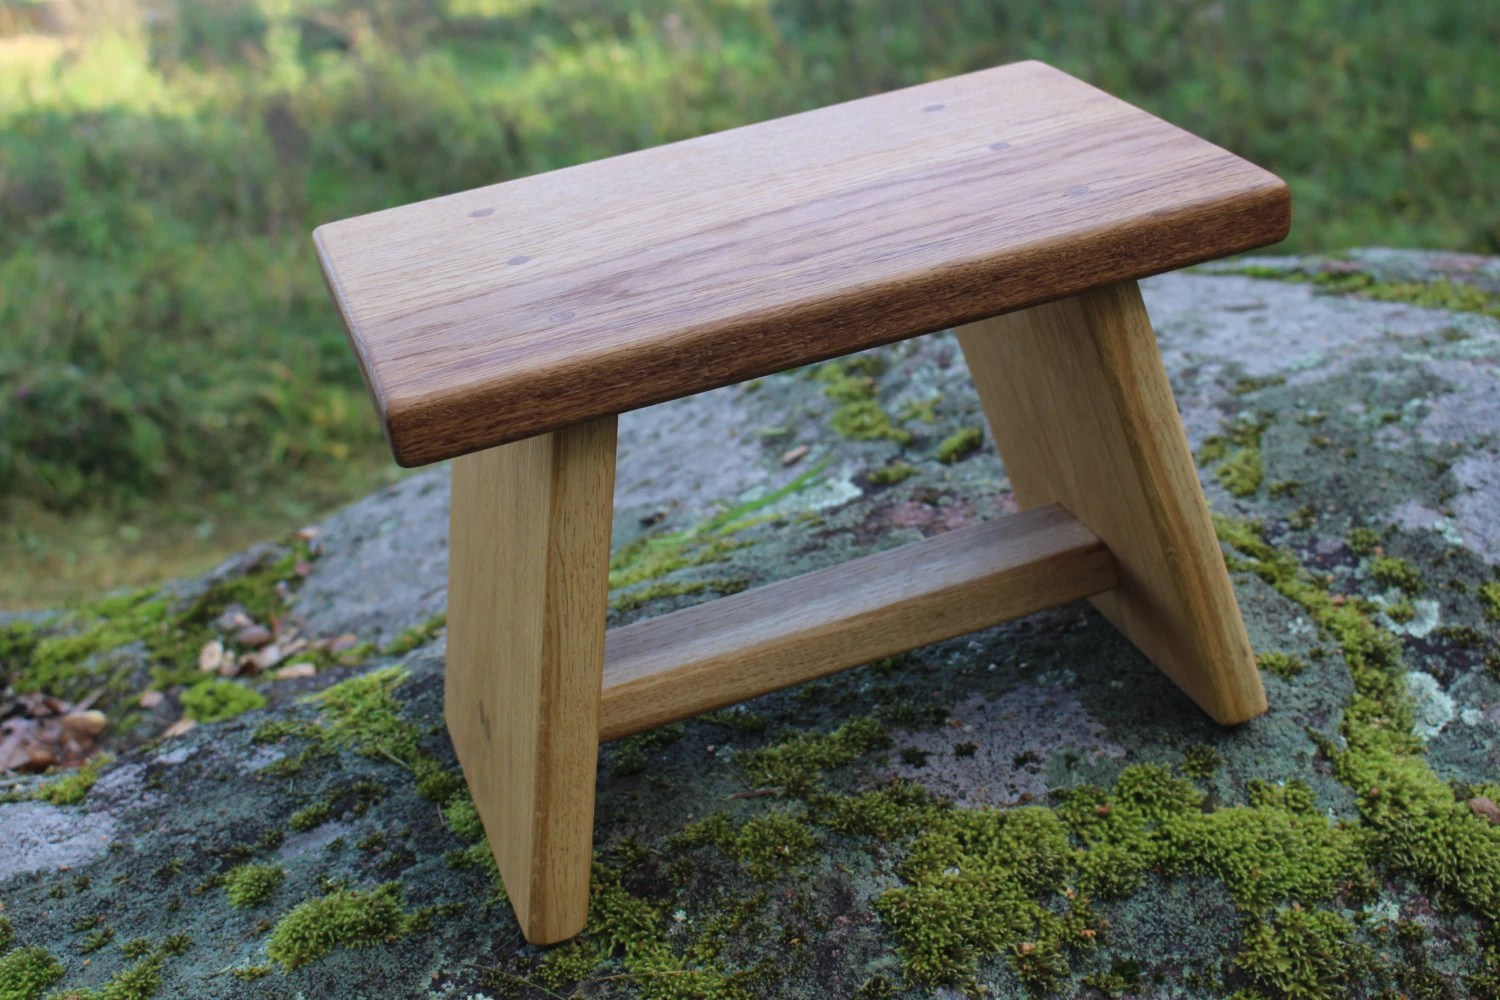 Wooden Step Stool Chair Step Stool Wooden Chair For Kids Rustic Stool Bathroom